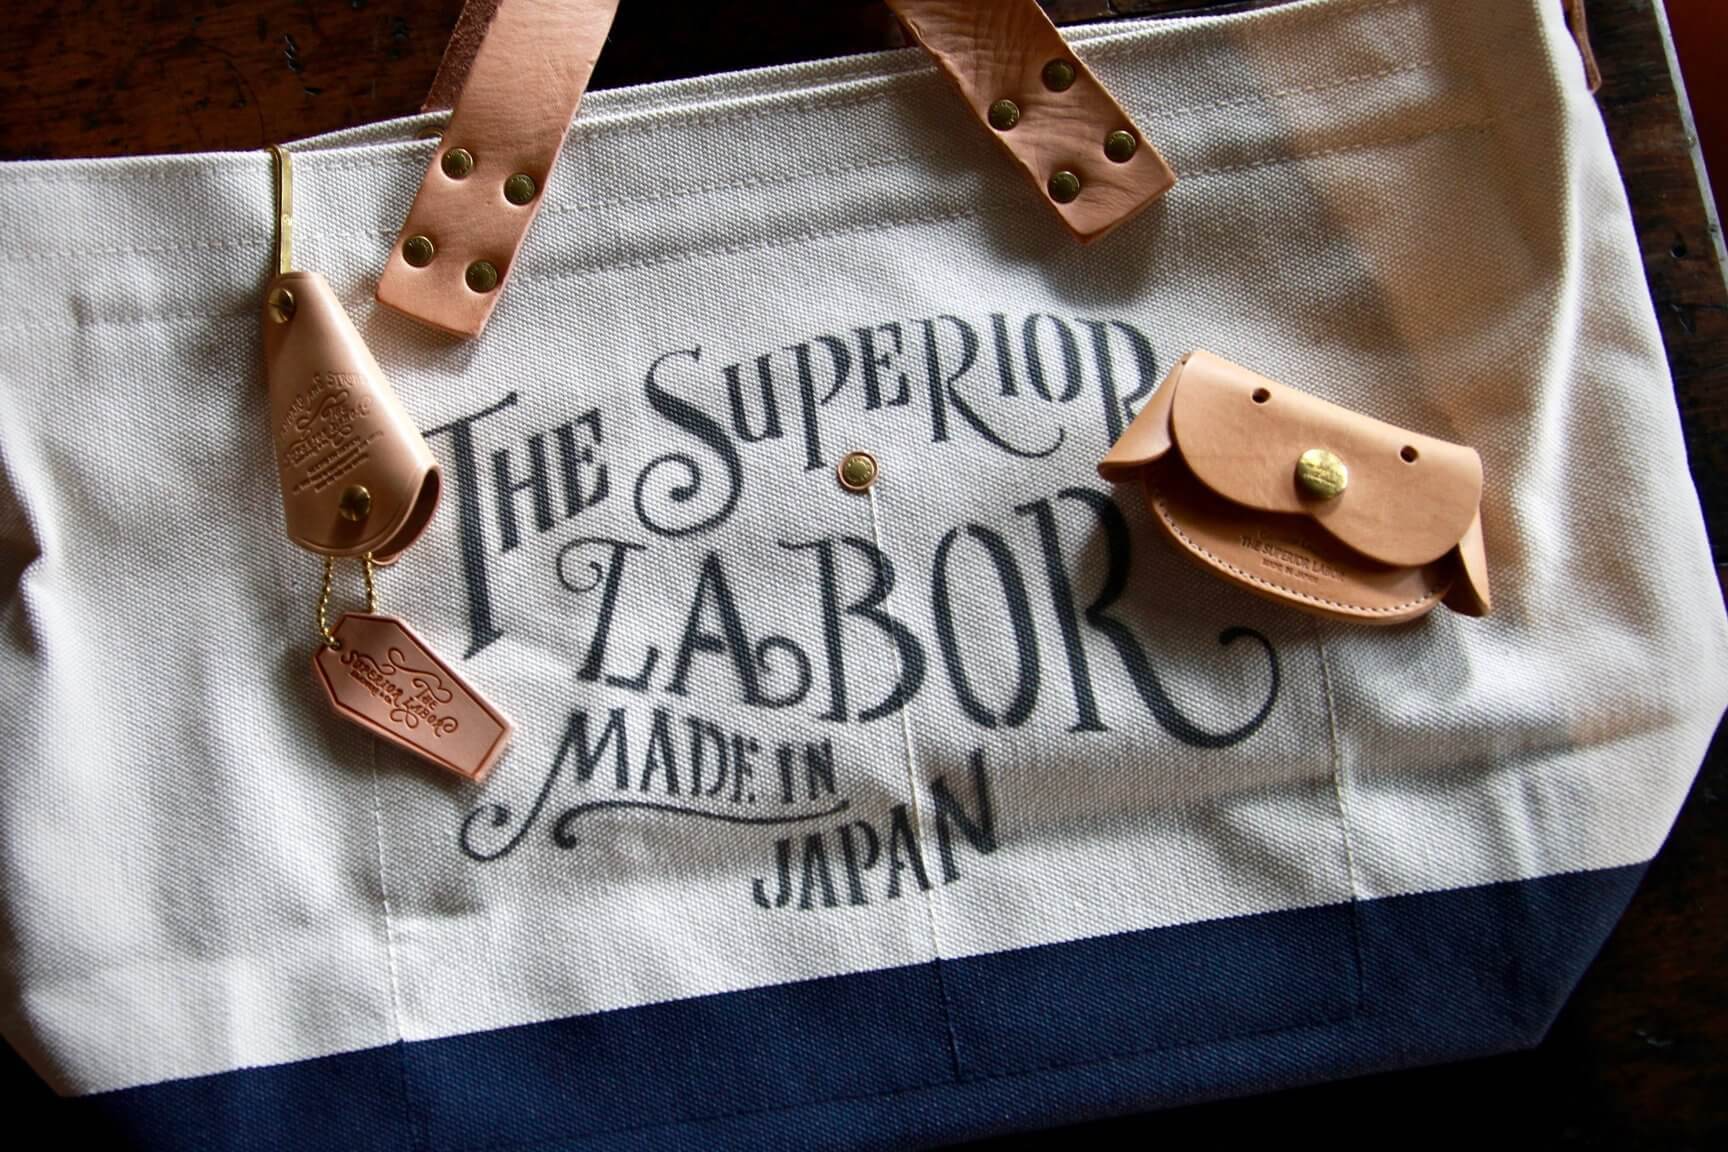 the superior labor engineer bag